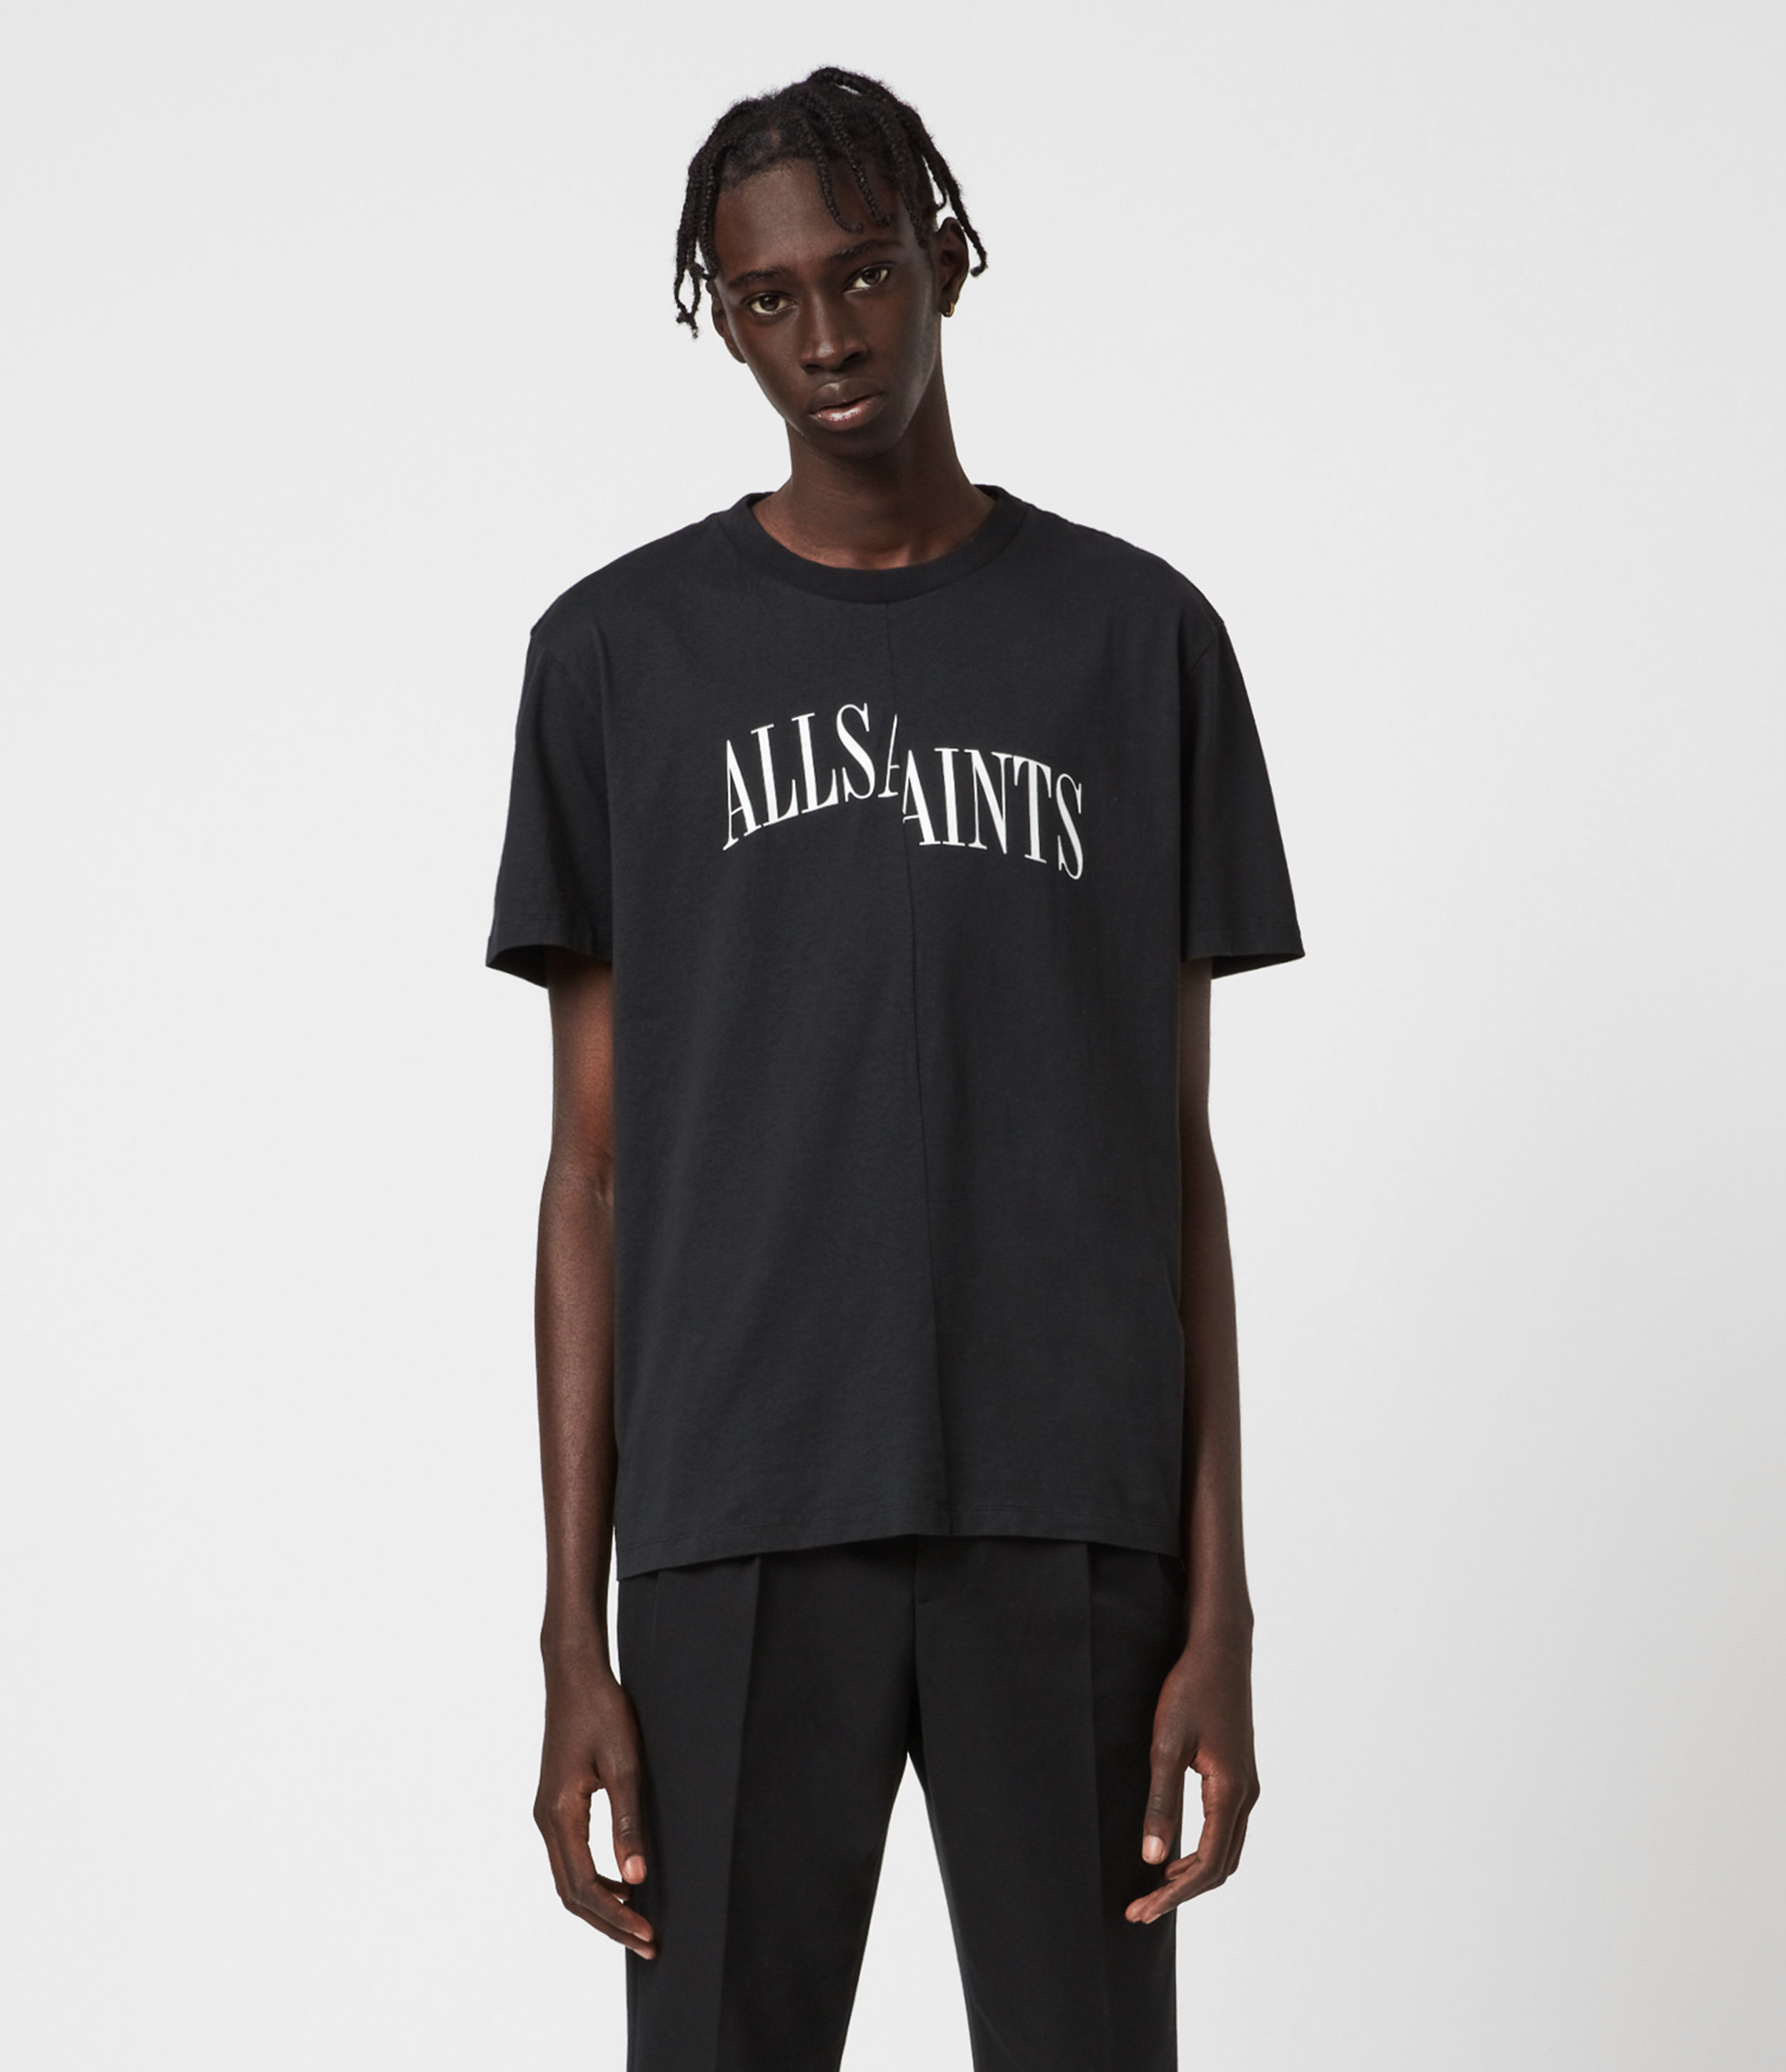 AllSaints Men's Cotton Relaxed Fit Logo Print Dropout Crew T-Shirt, Black, Size: XS